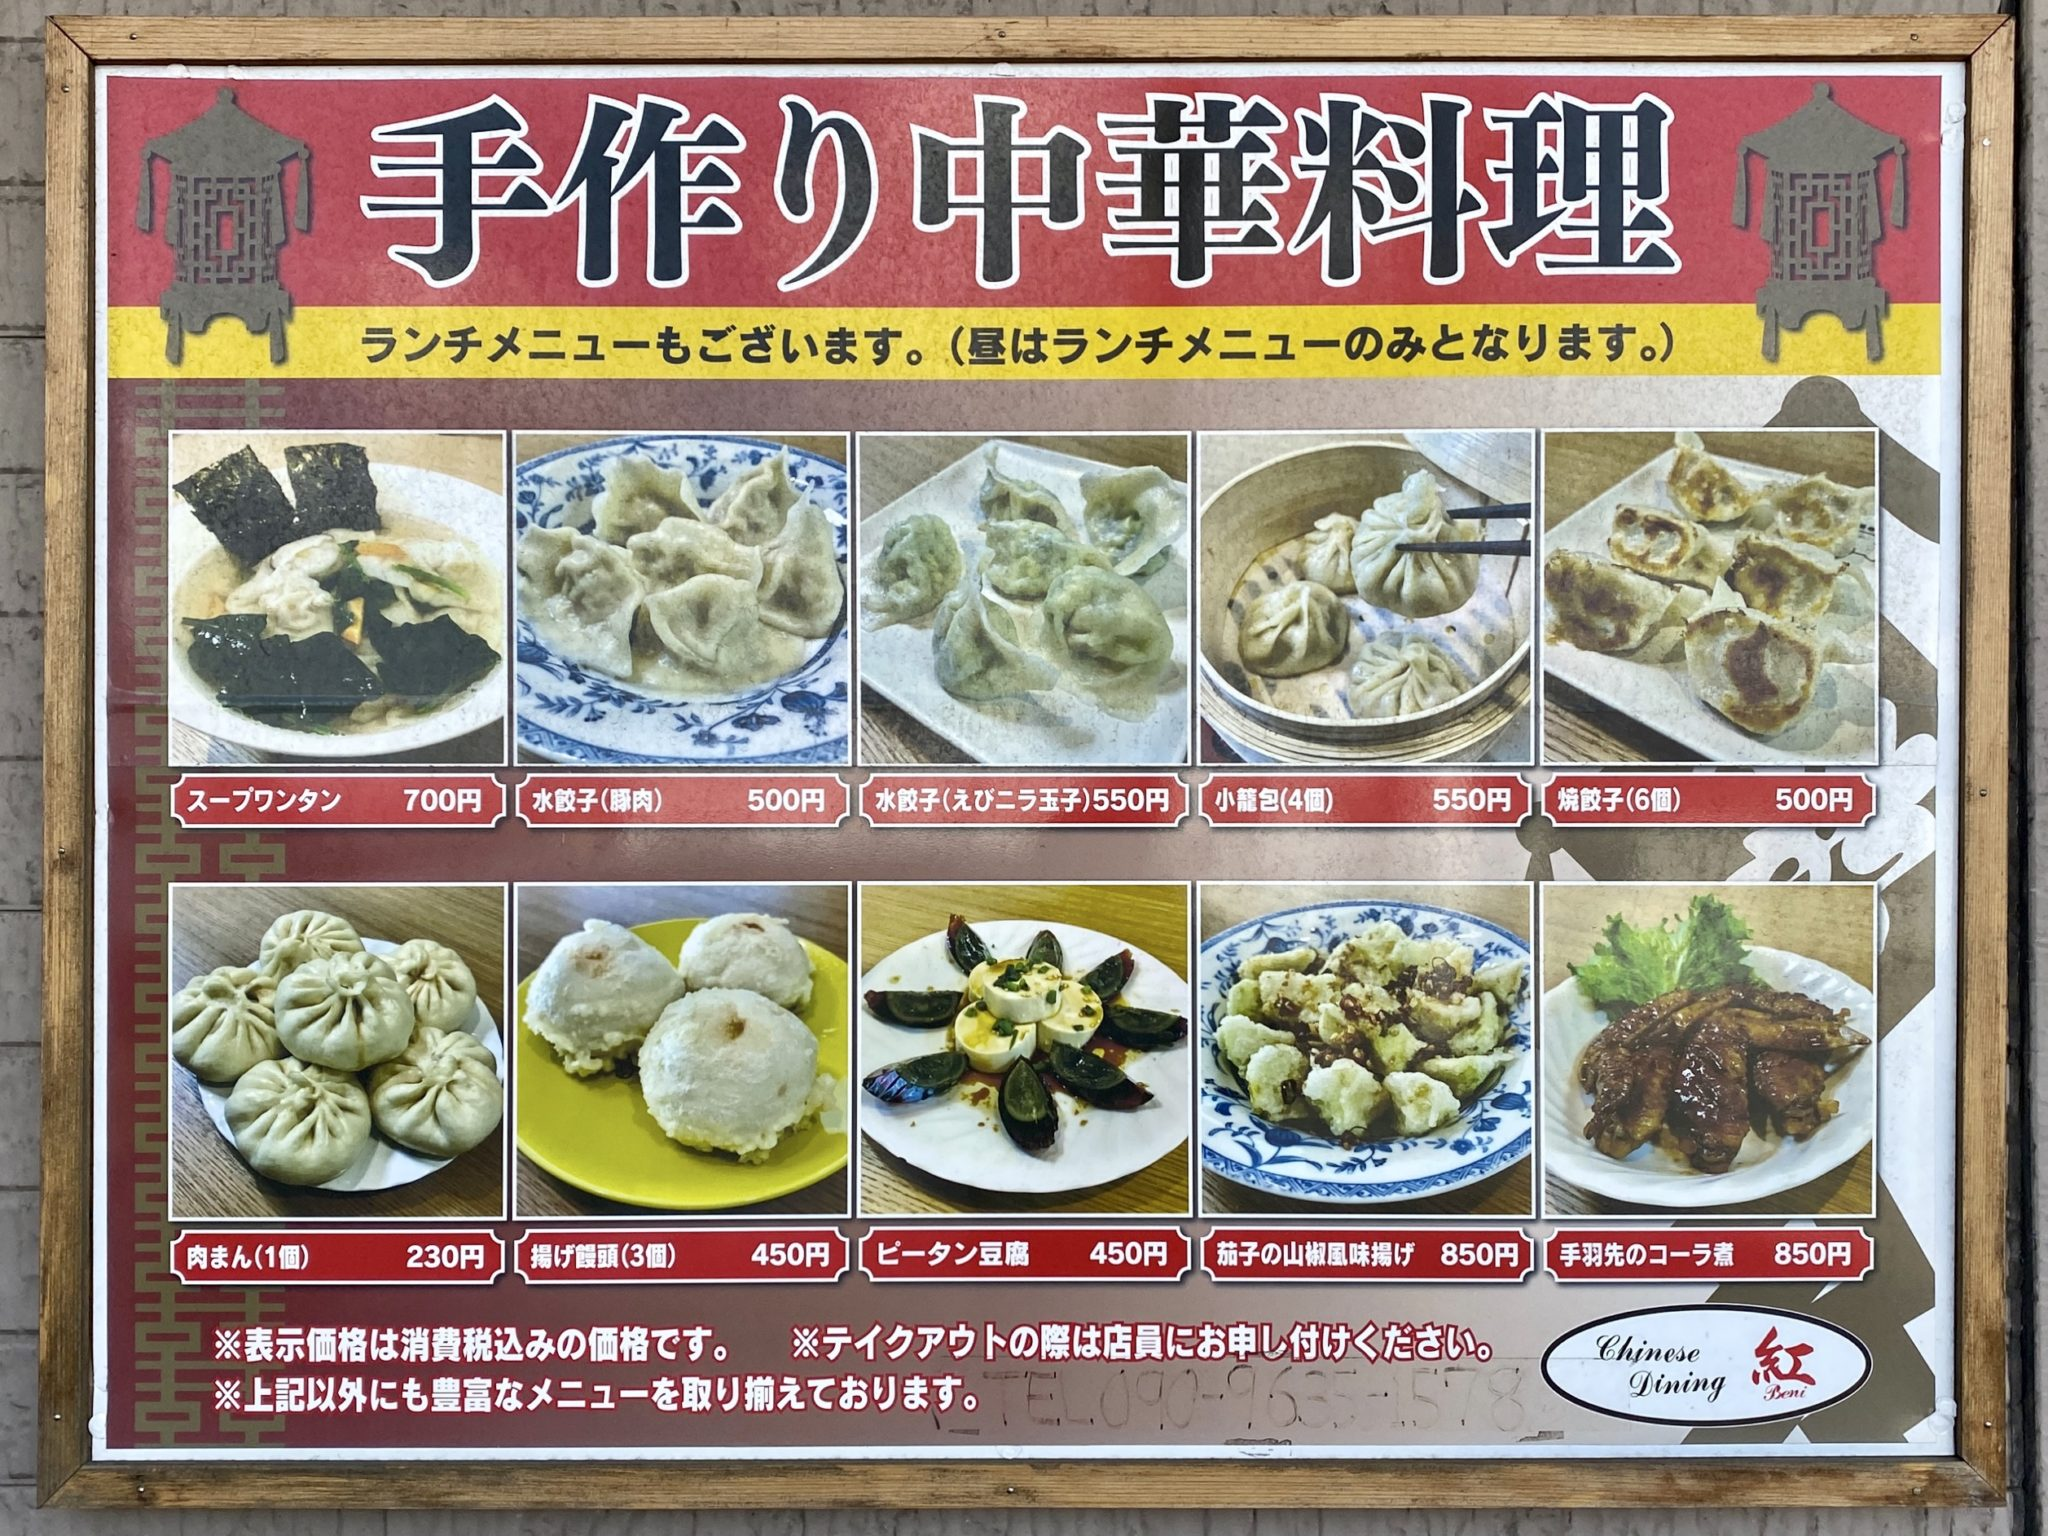 Chinese Dining 紅 チャイニーズダイニング べに 秋田県能代市 メニュー看板